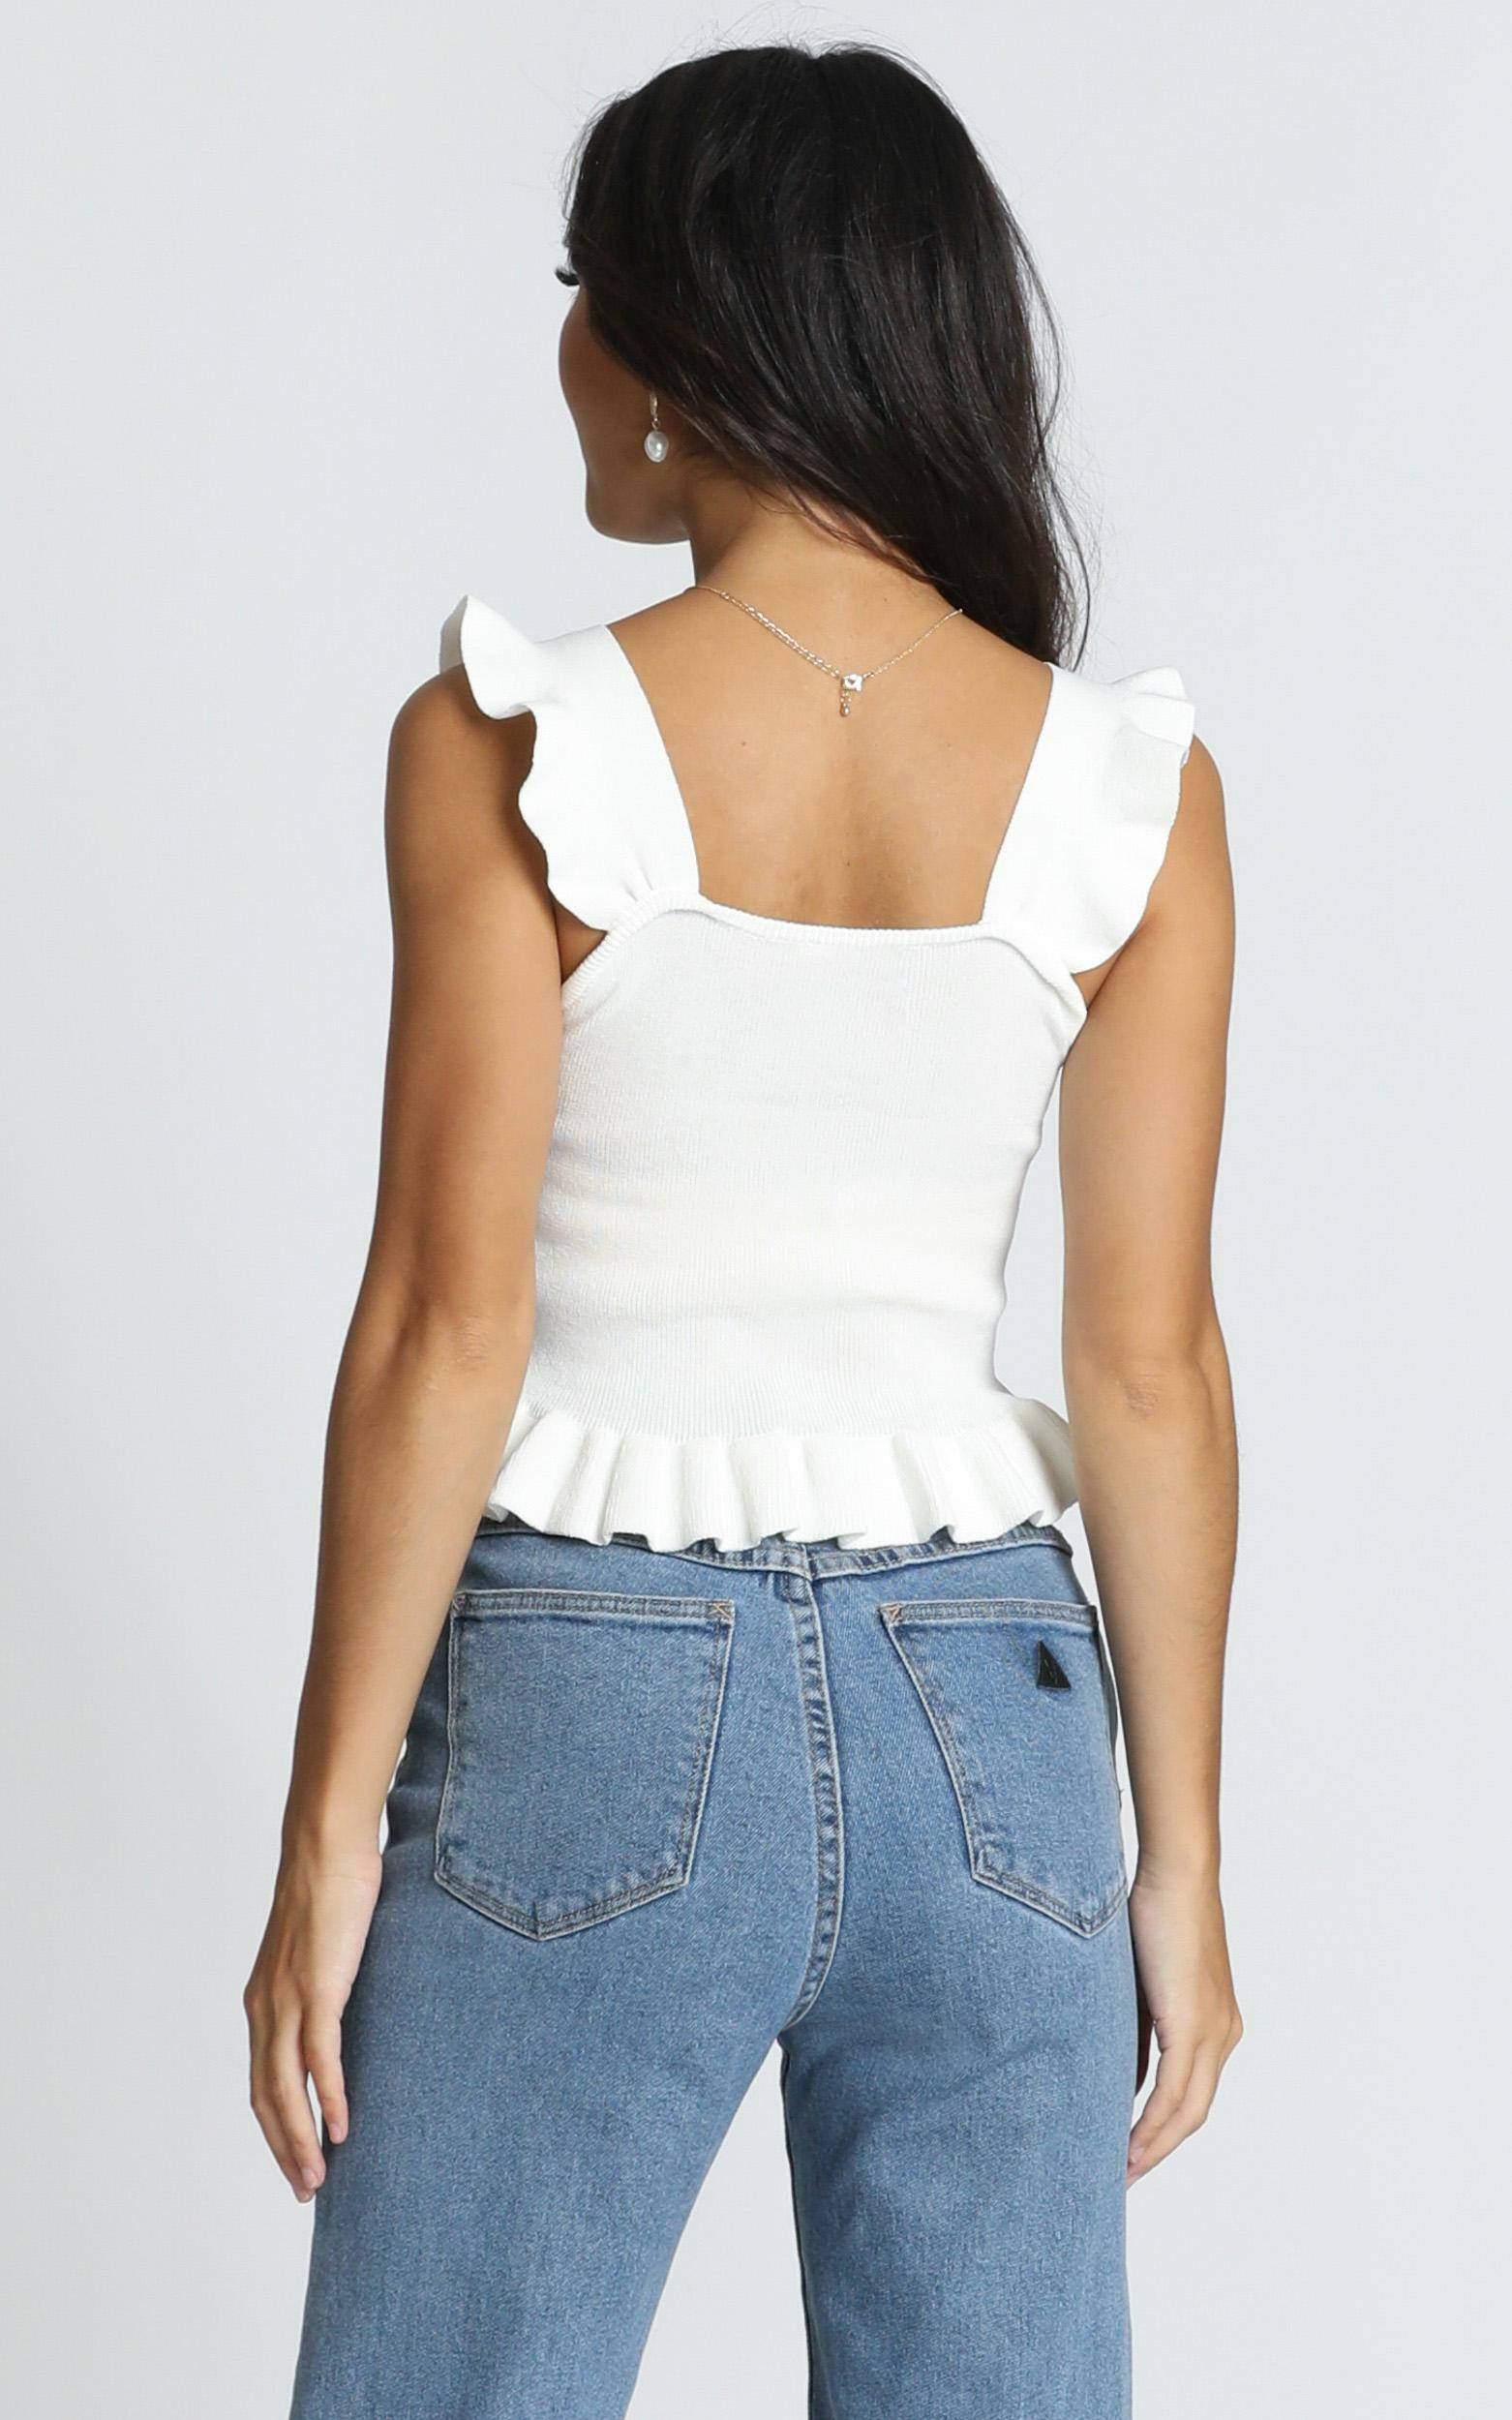 Im All In knit top in white - 16 (XXL), White, hi-res image number null